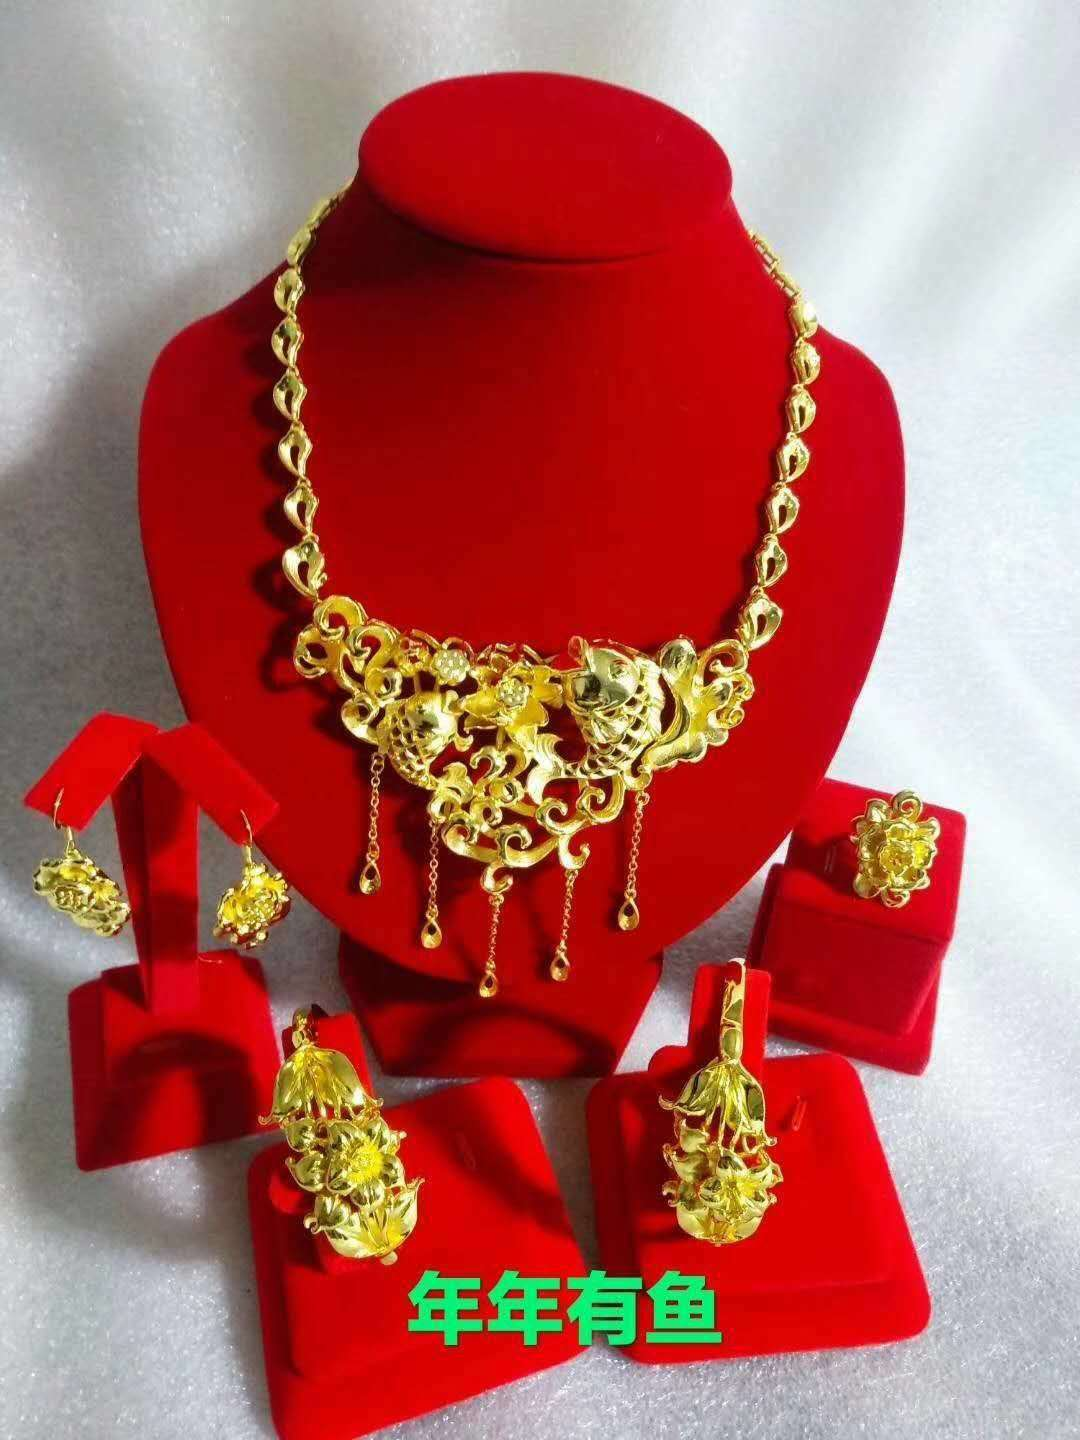 Yulaili Chinese Style Design More Than a Year Fish Shape Gift Jewelry Sets Necklace Bracelet Earrings Ring Jewelry Display